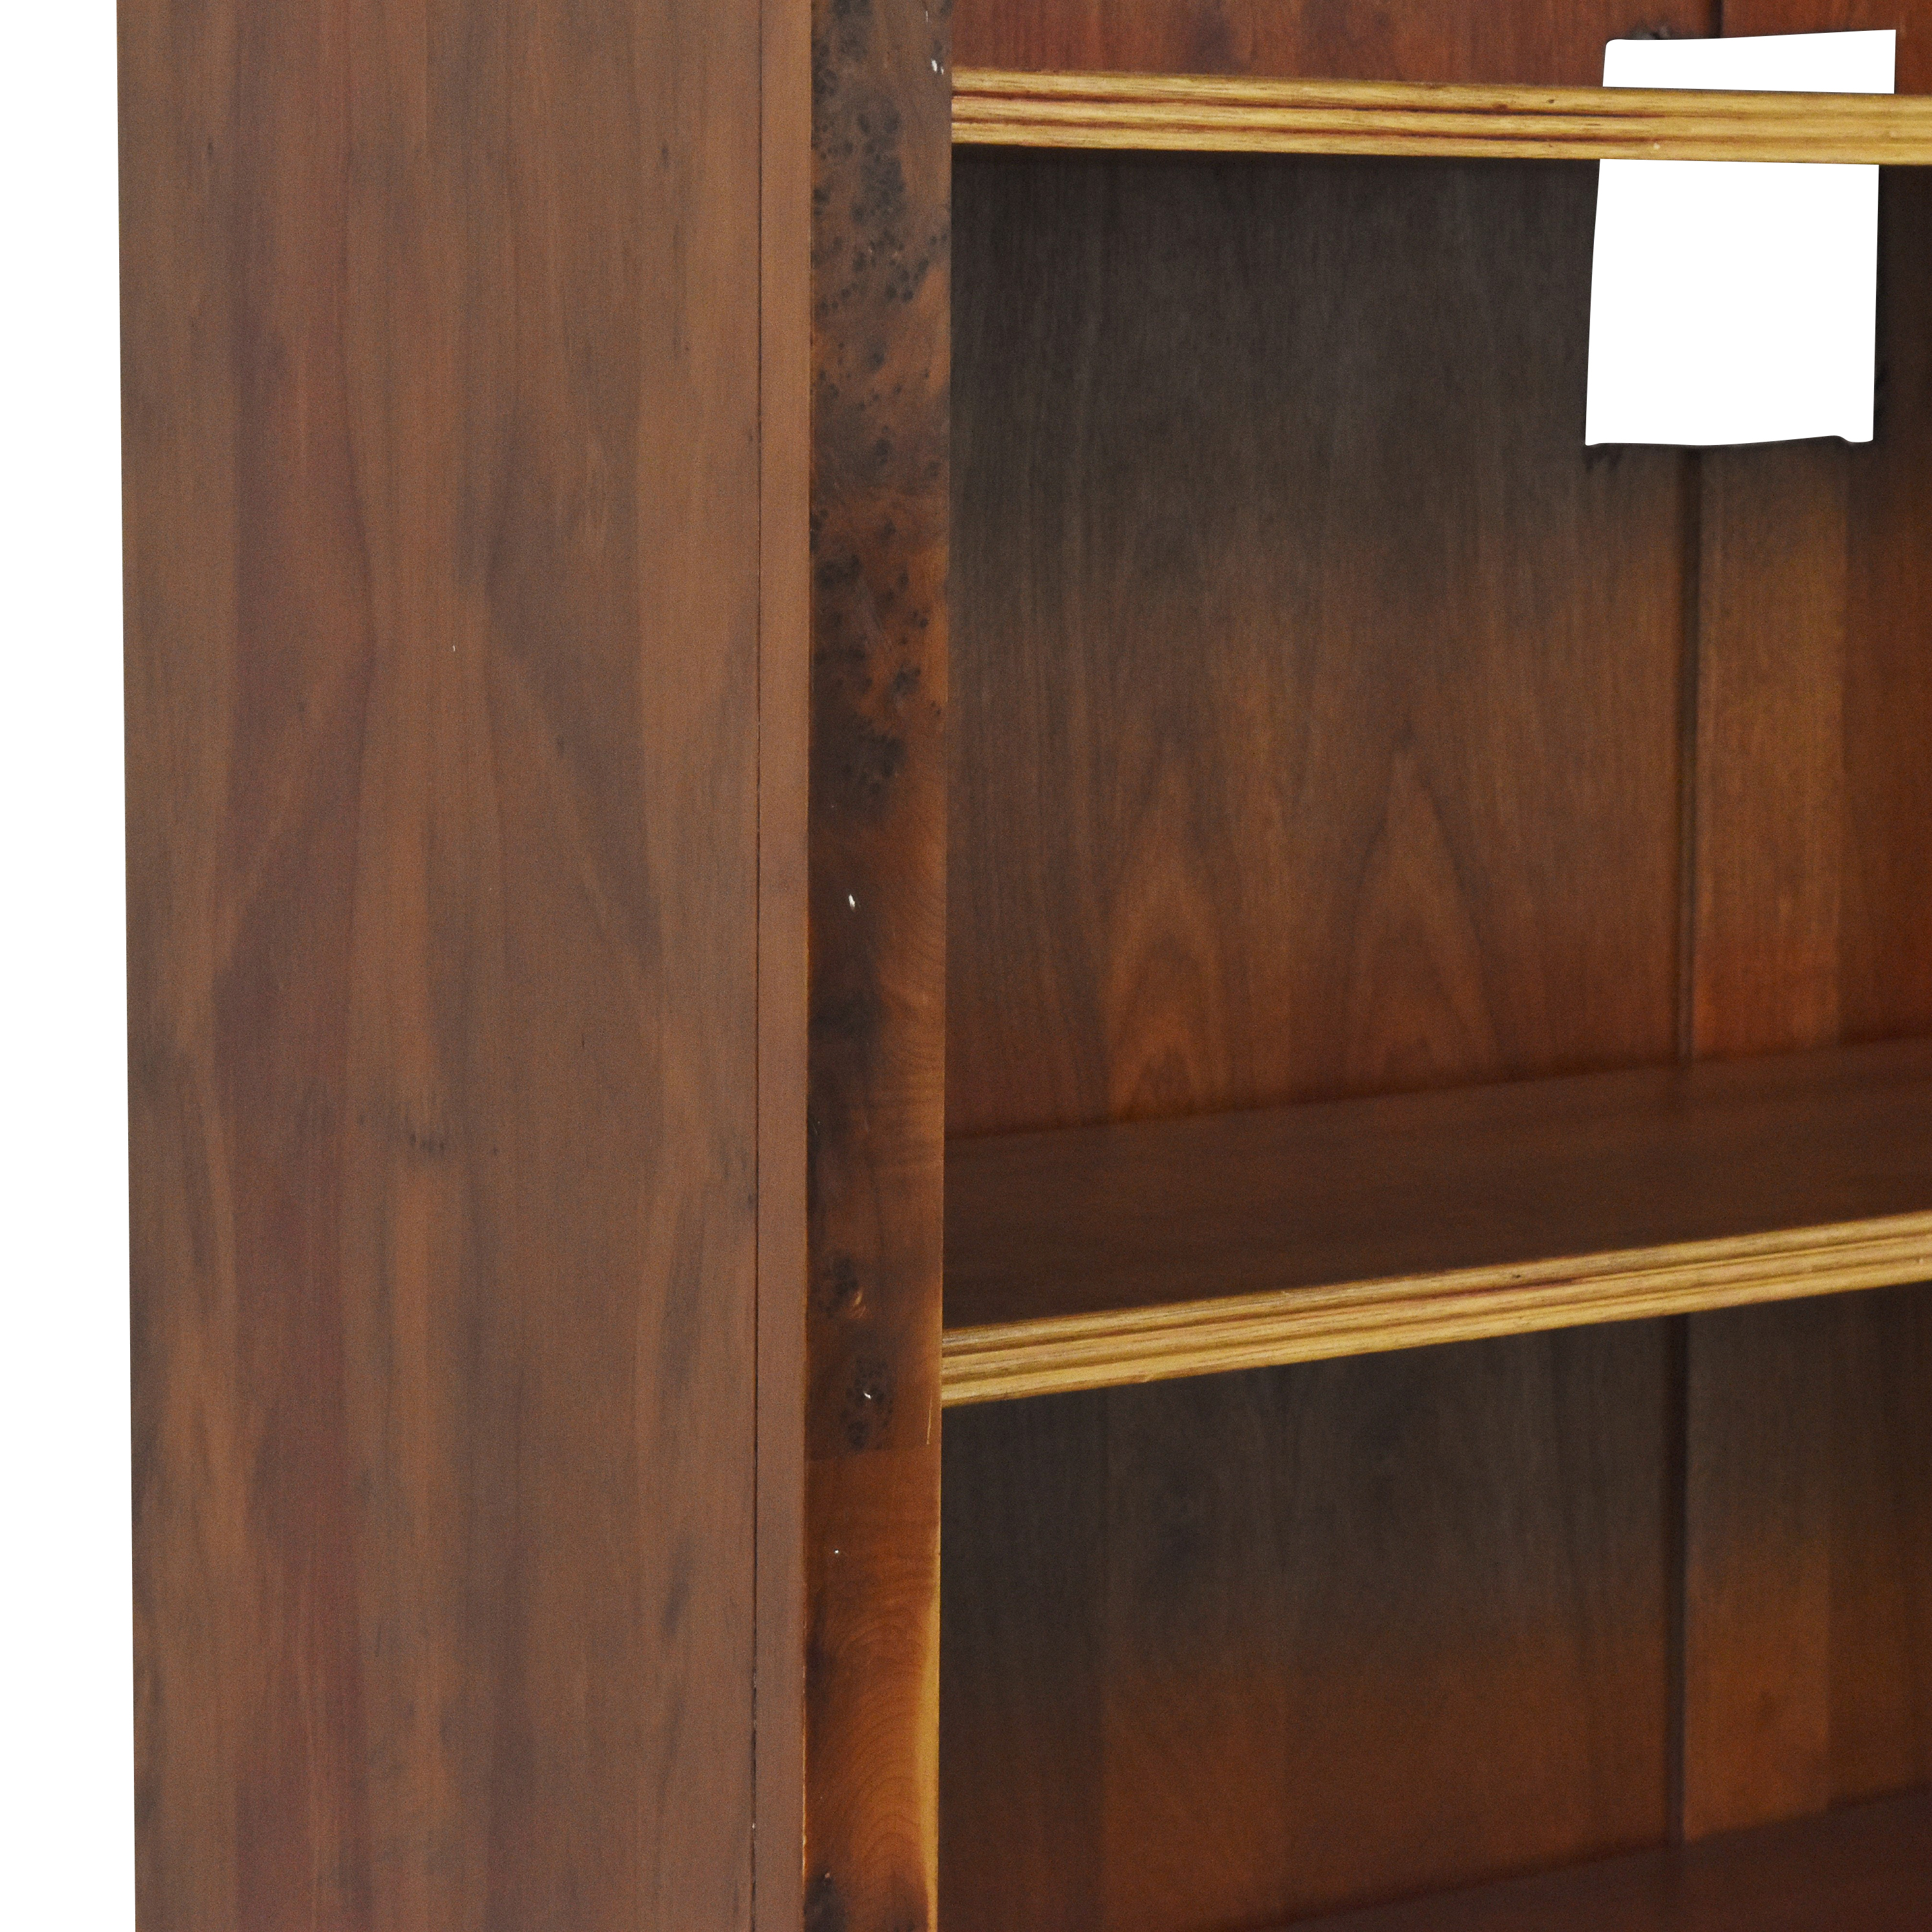 Six Tier Bookcase / Bookcases & Shelving